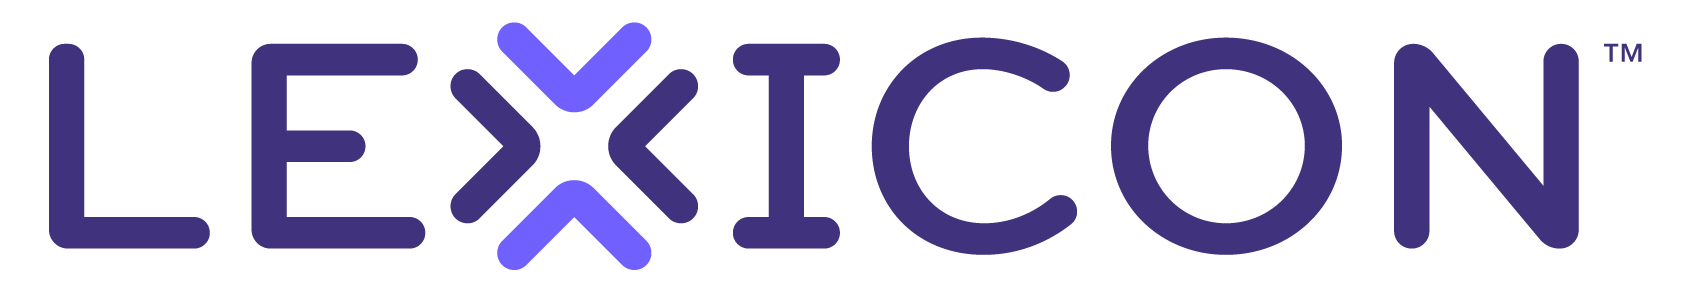 Lexicon Primary Logo